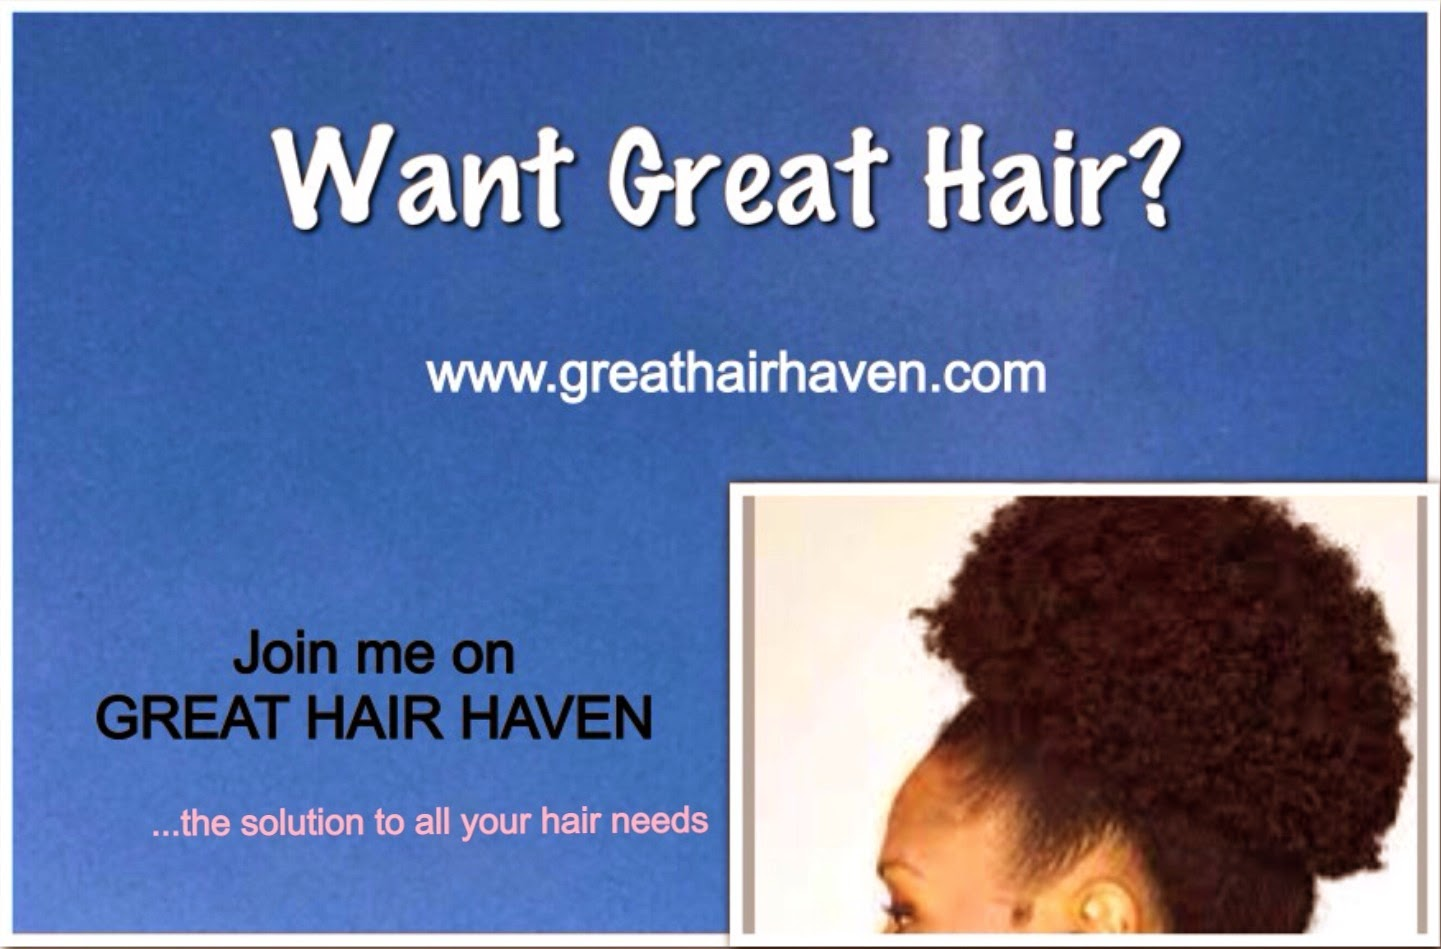 Great Hair Haven